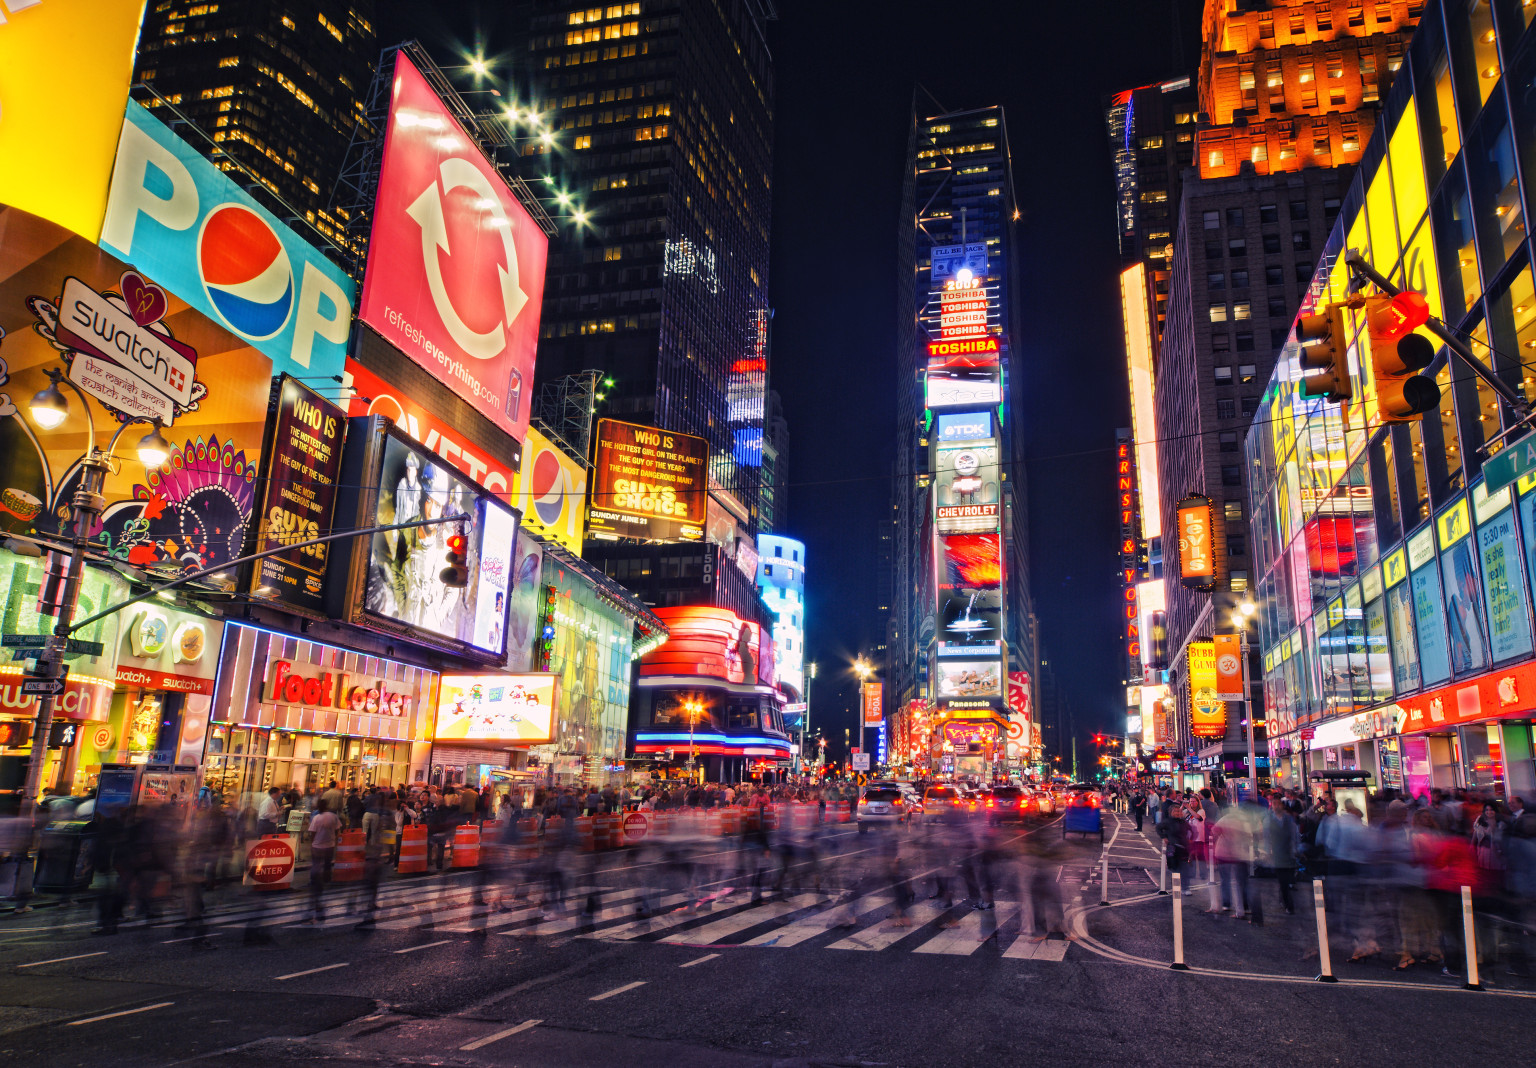 Hidden times square 7 places you shouldn 39 t miss huffpost for Places to see in nyc at night